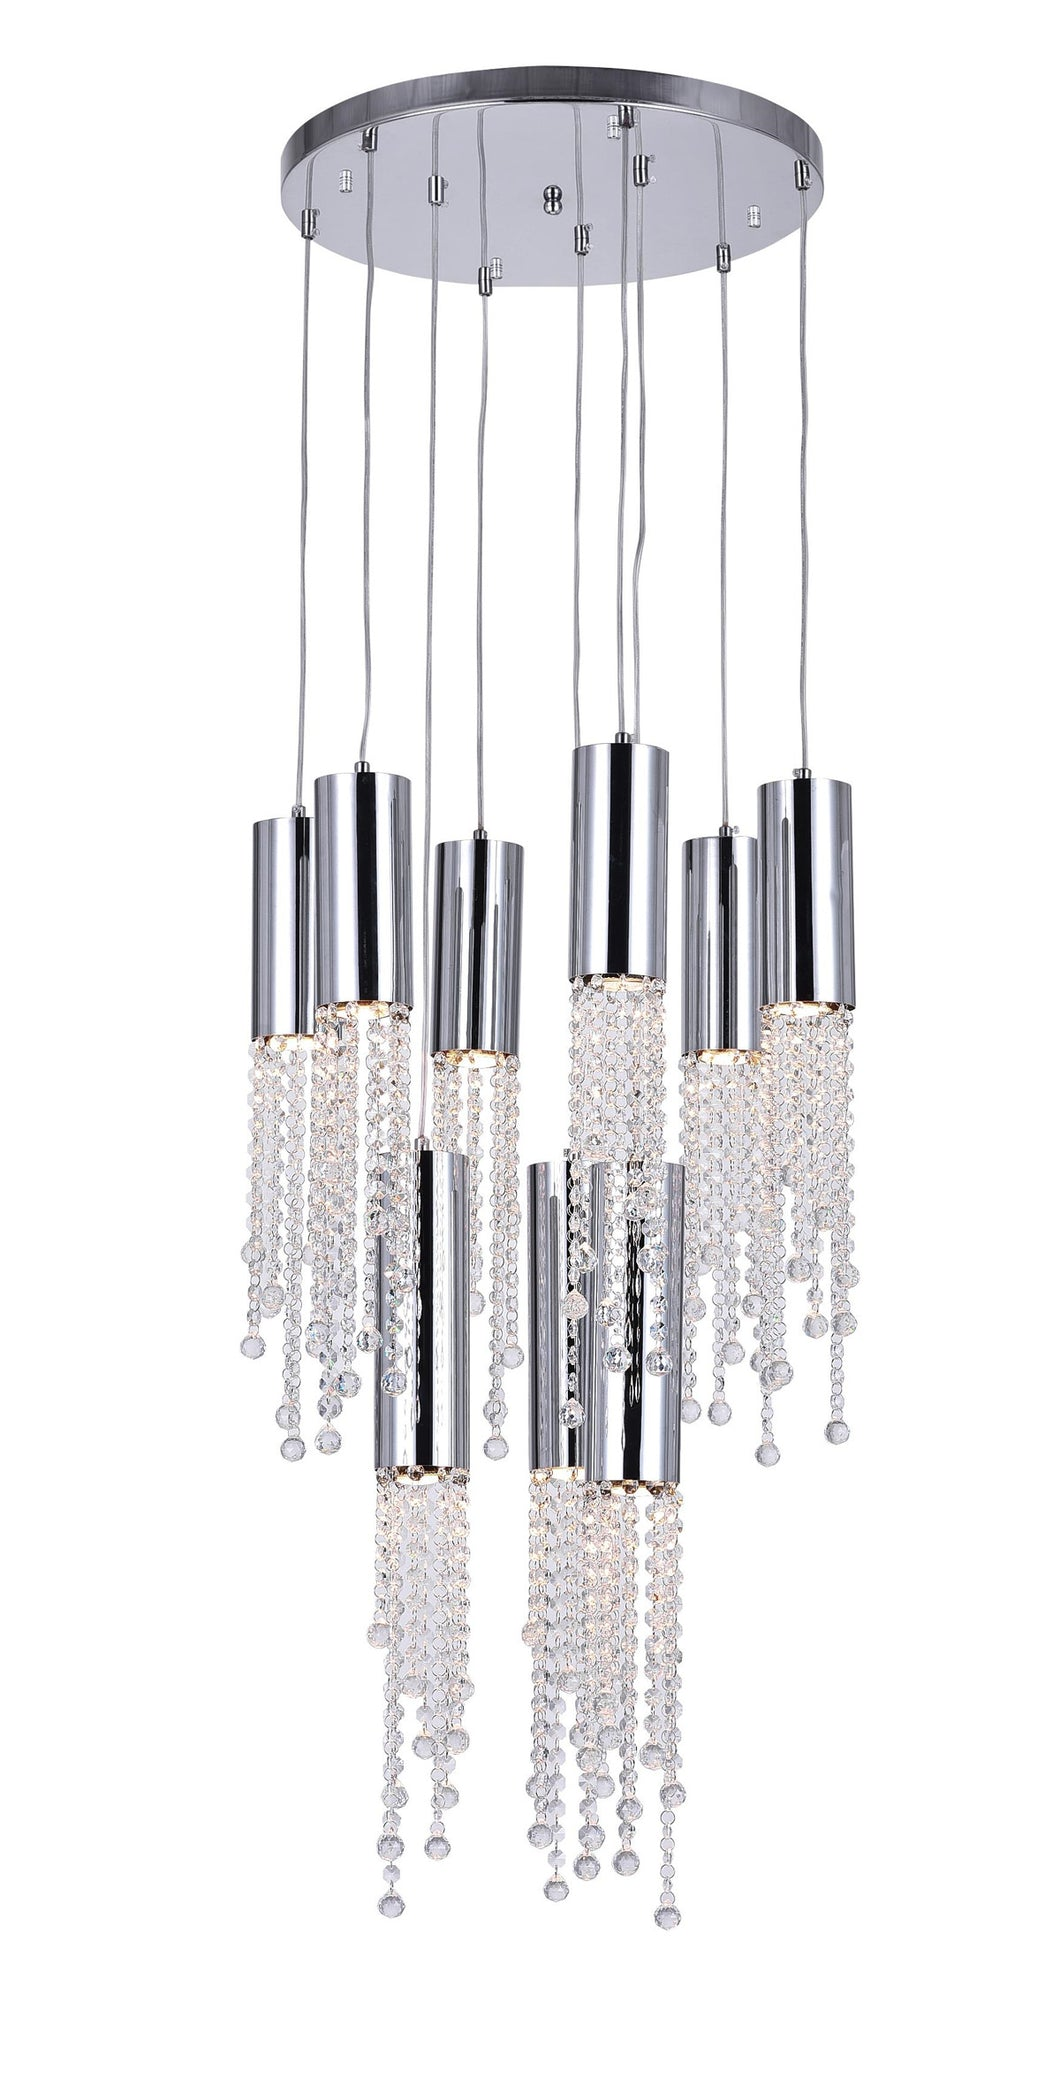 9 Light Multi Light Pendant with Chrome finish